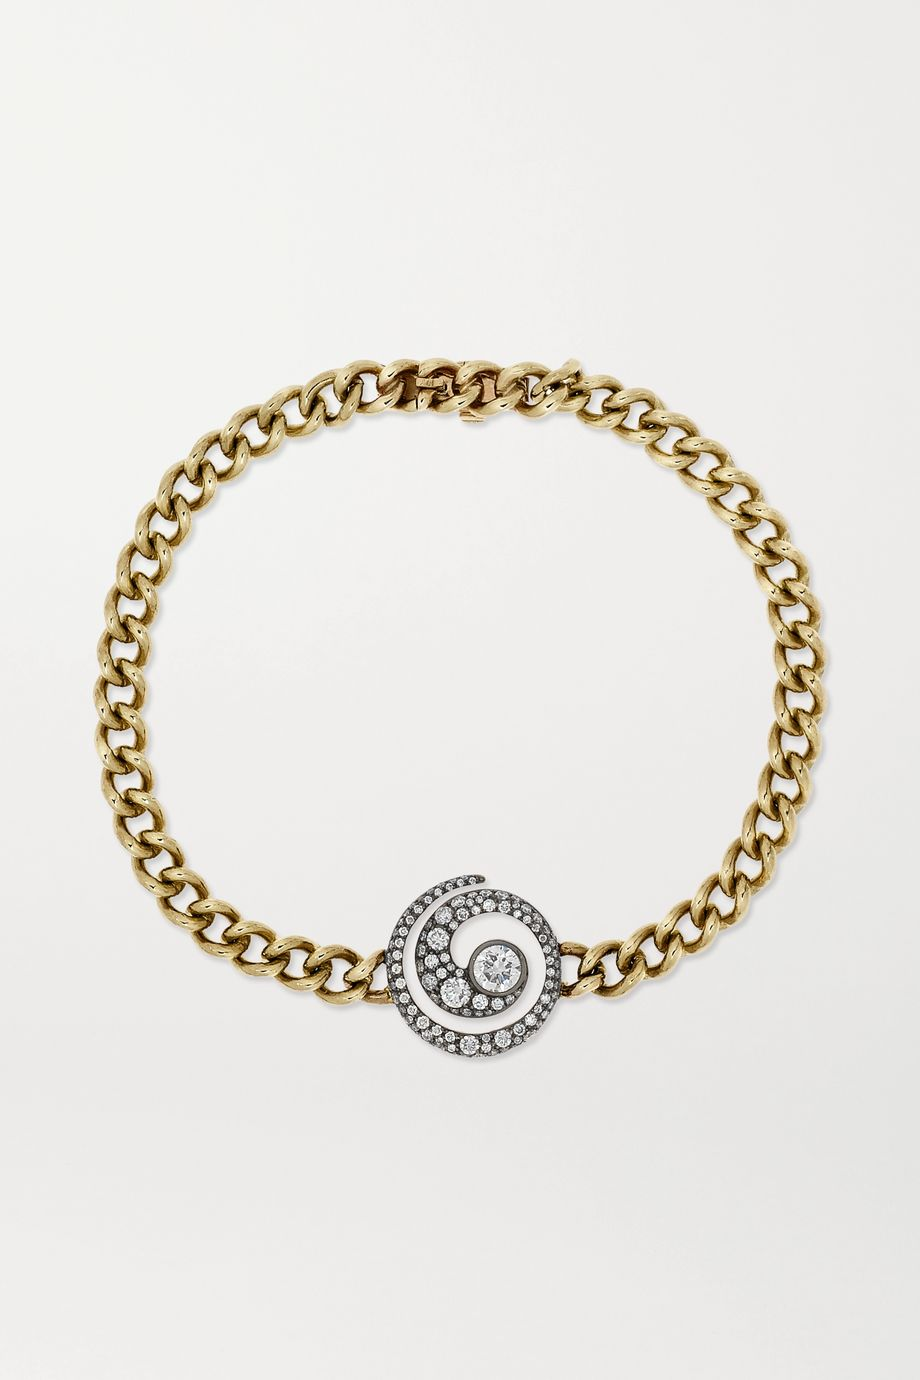 Jessica McCormack Tattoo 18-karat blackened white and 9-karat yellow gold diamond bracelet